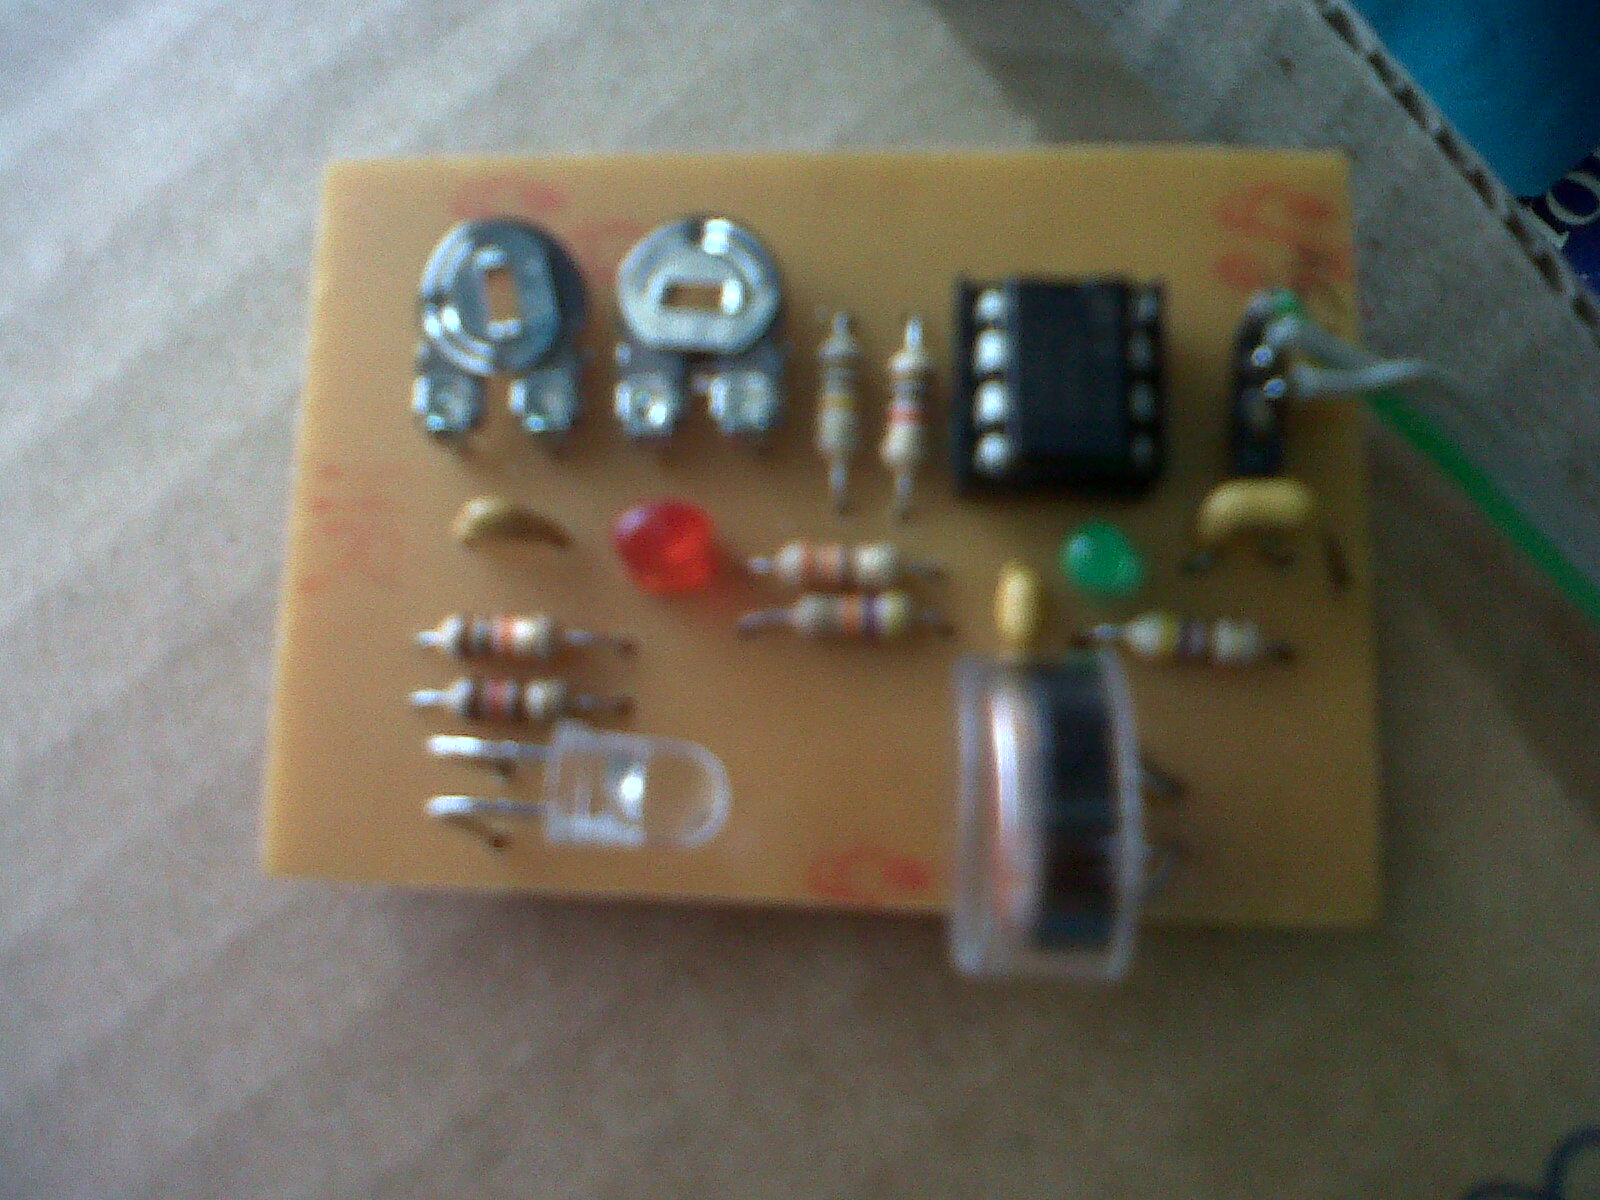 Heartbeat Monitor Circuit With Led And Photocell Youspice